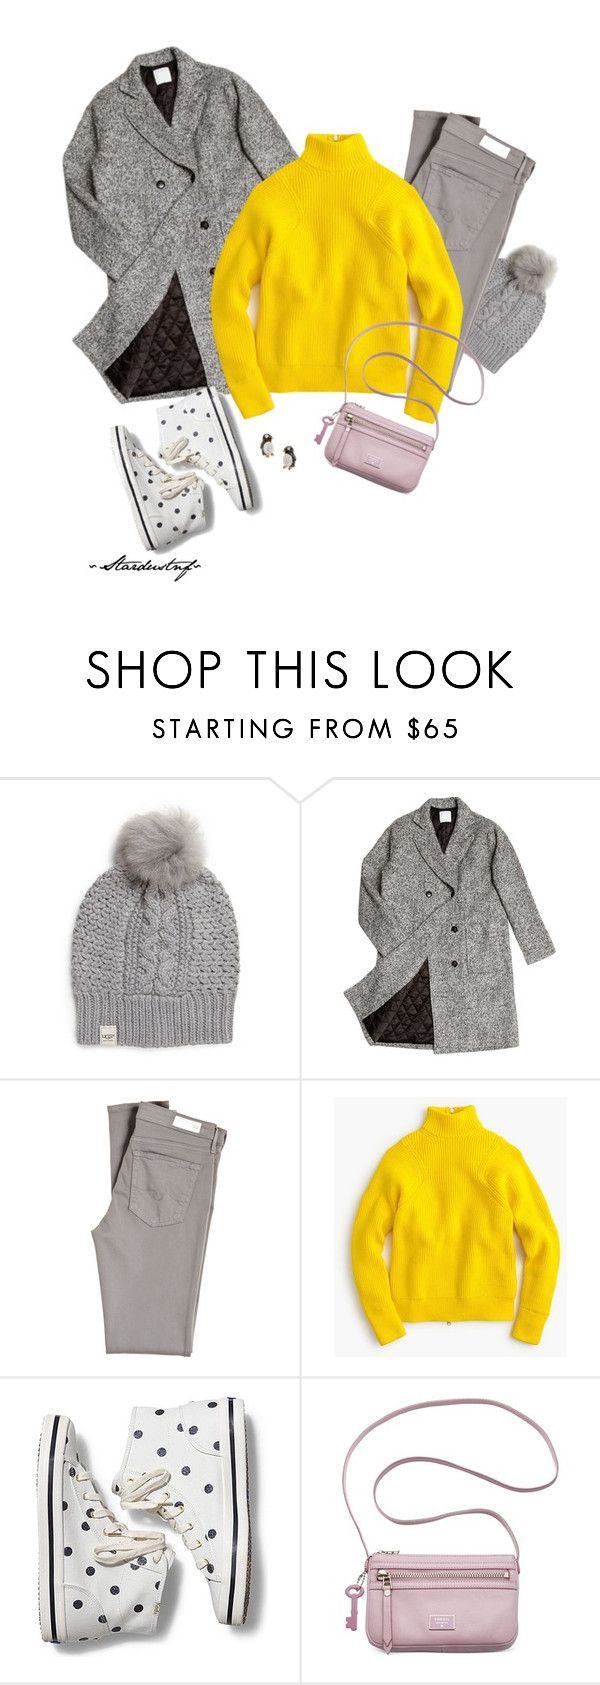 """""""Lemon Meringue Pie"""" by stardustnf ❤ liked on Polyvore featuring UGG Australia, ssongbyssong, AG Adriano Goldschmied, J.Crew, Keds, FOSSIL, women's clothing, women's fashion, women and female"""